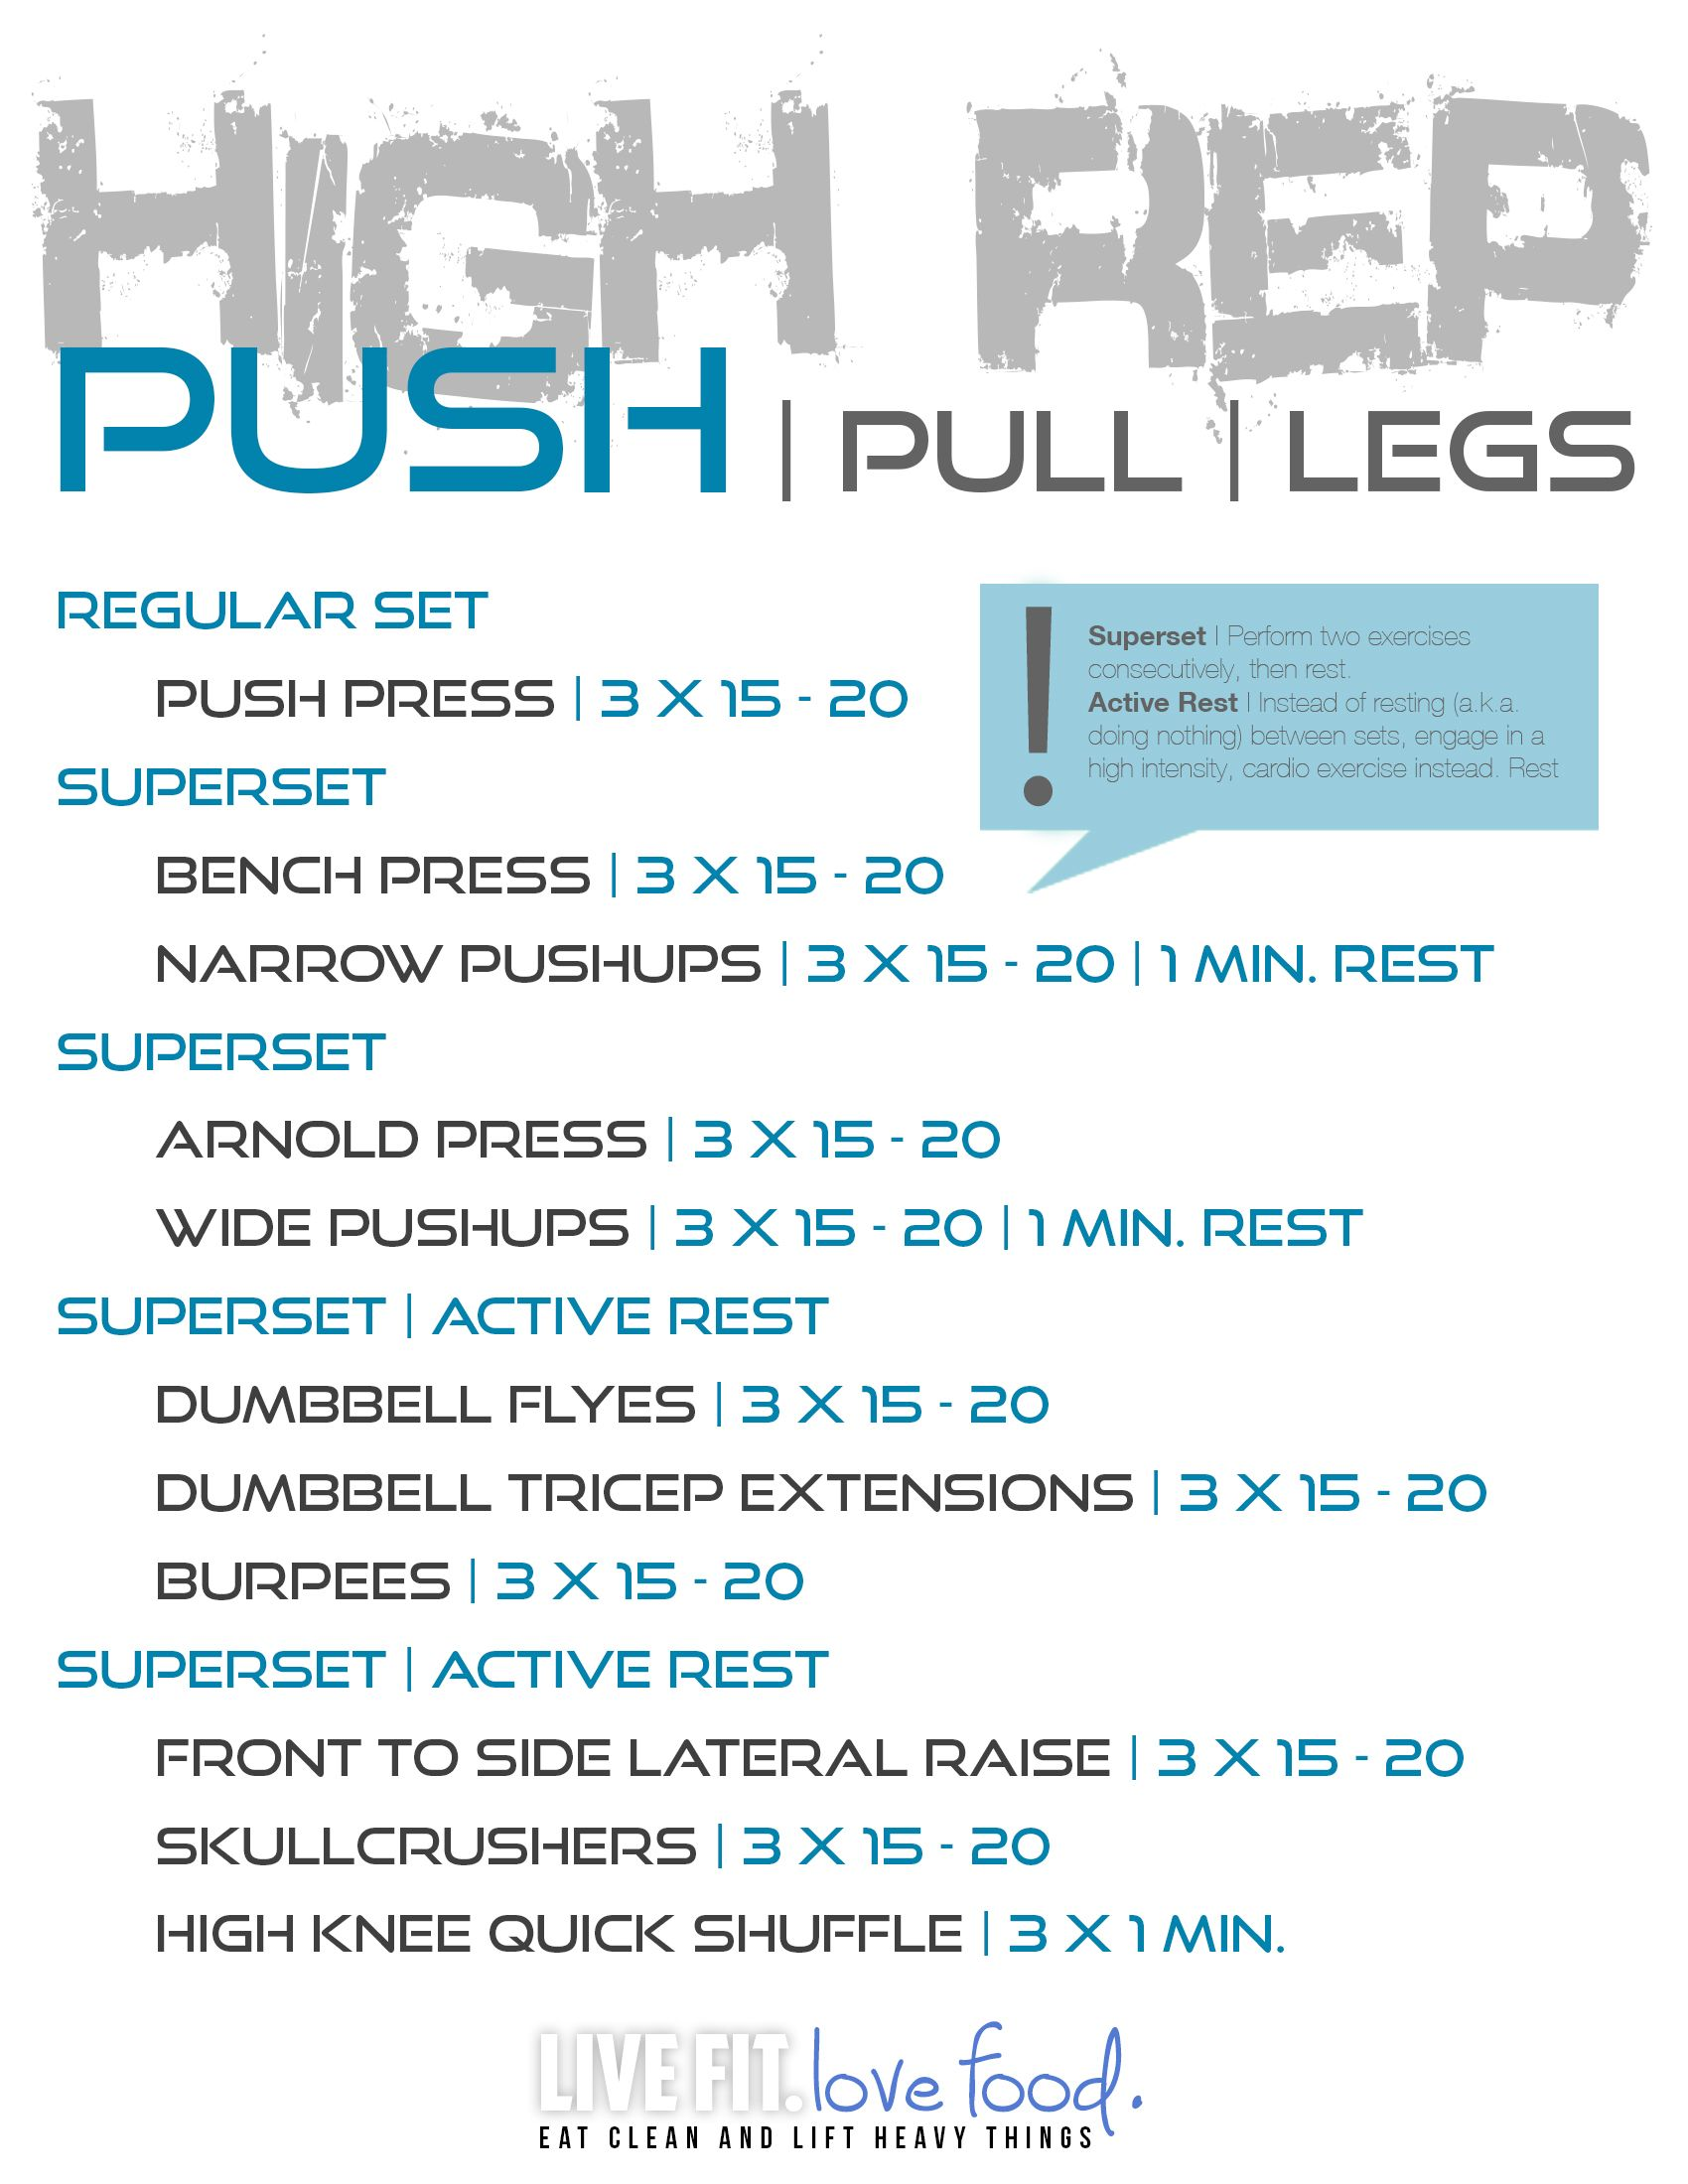 Training | Push/ Pull Workout Routine Cutting | Weight